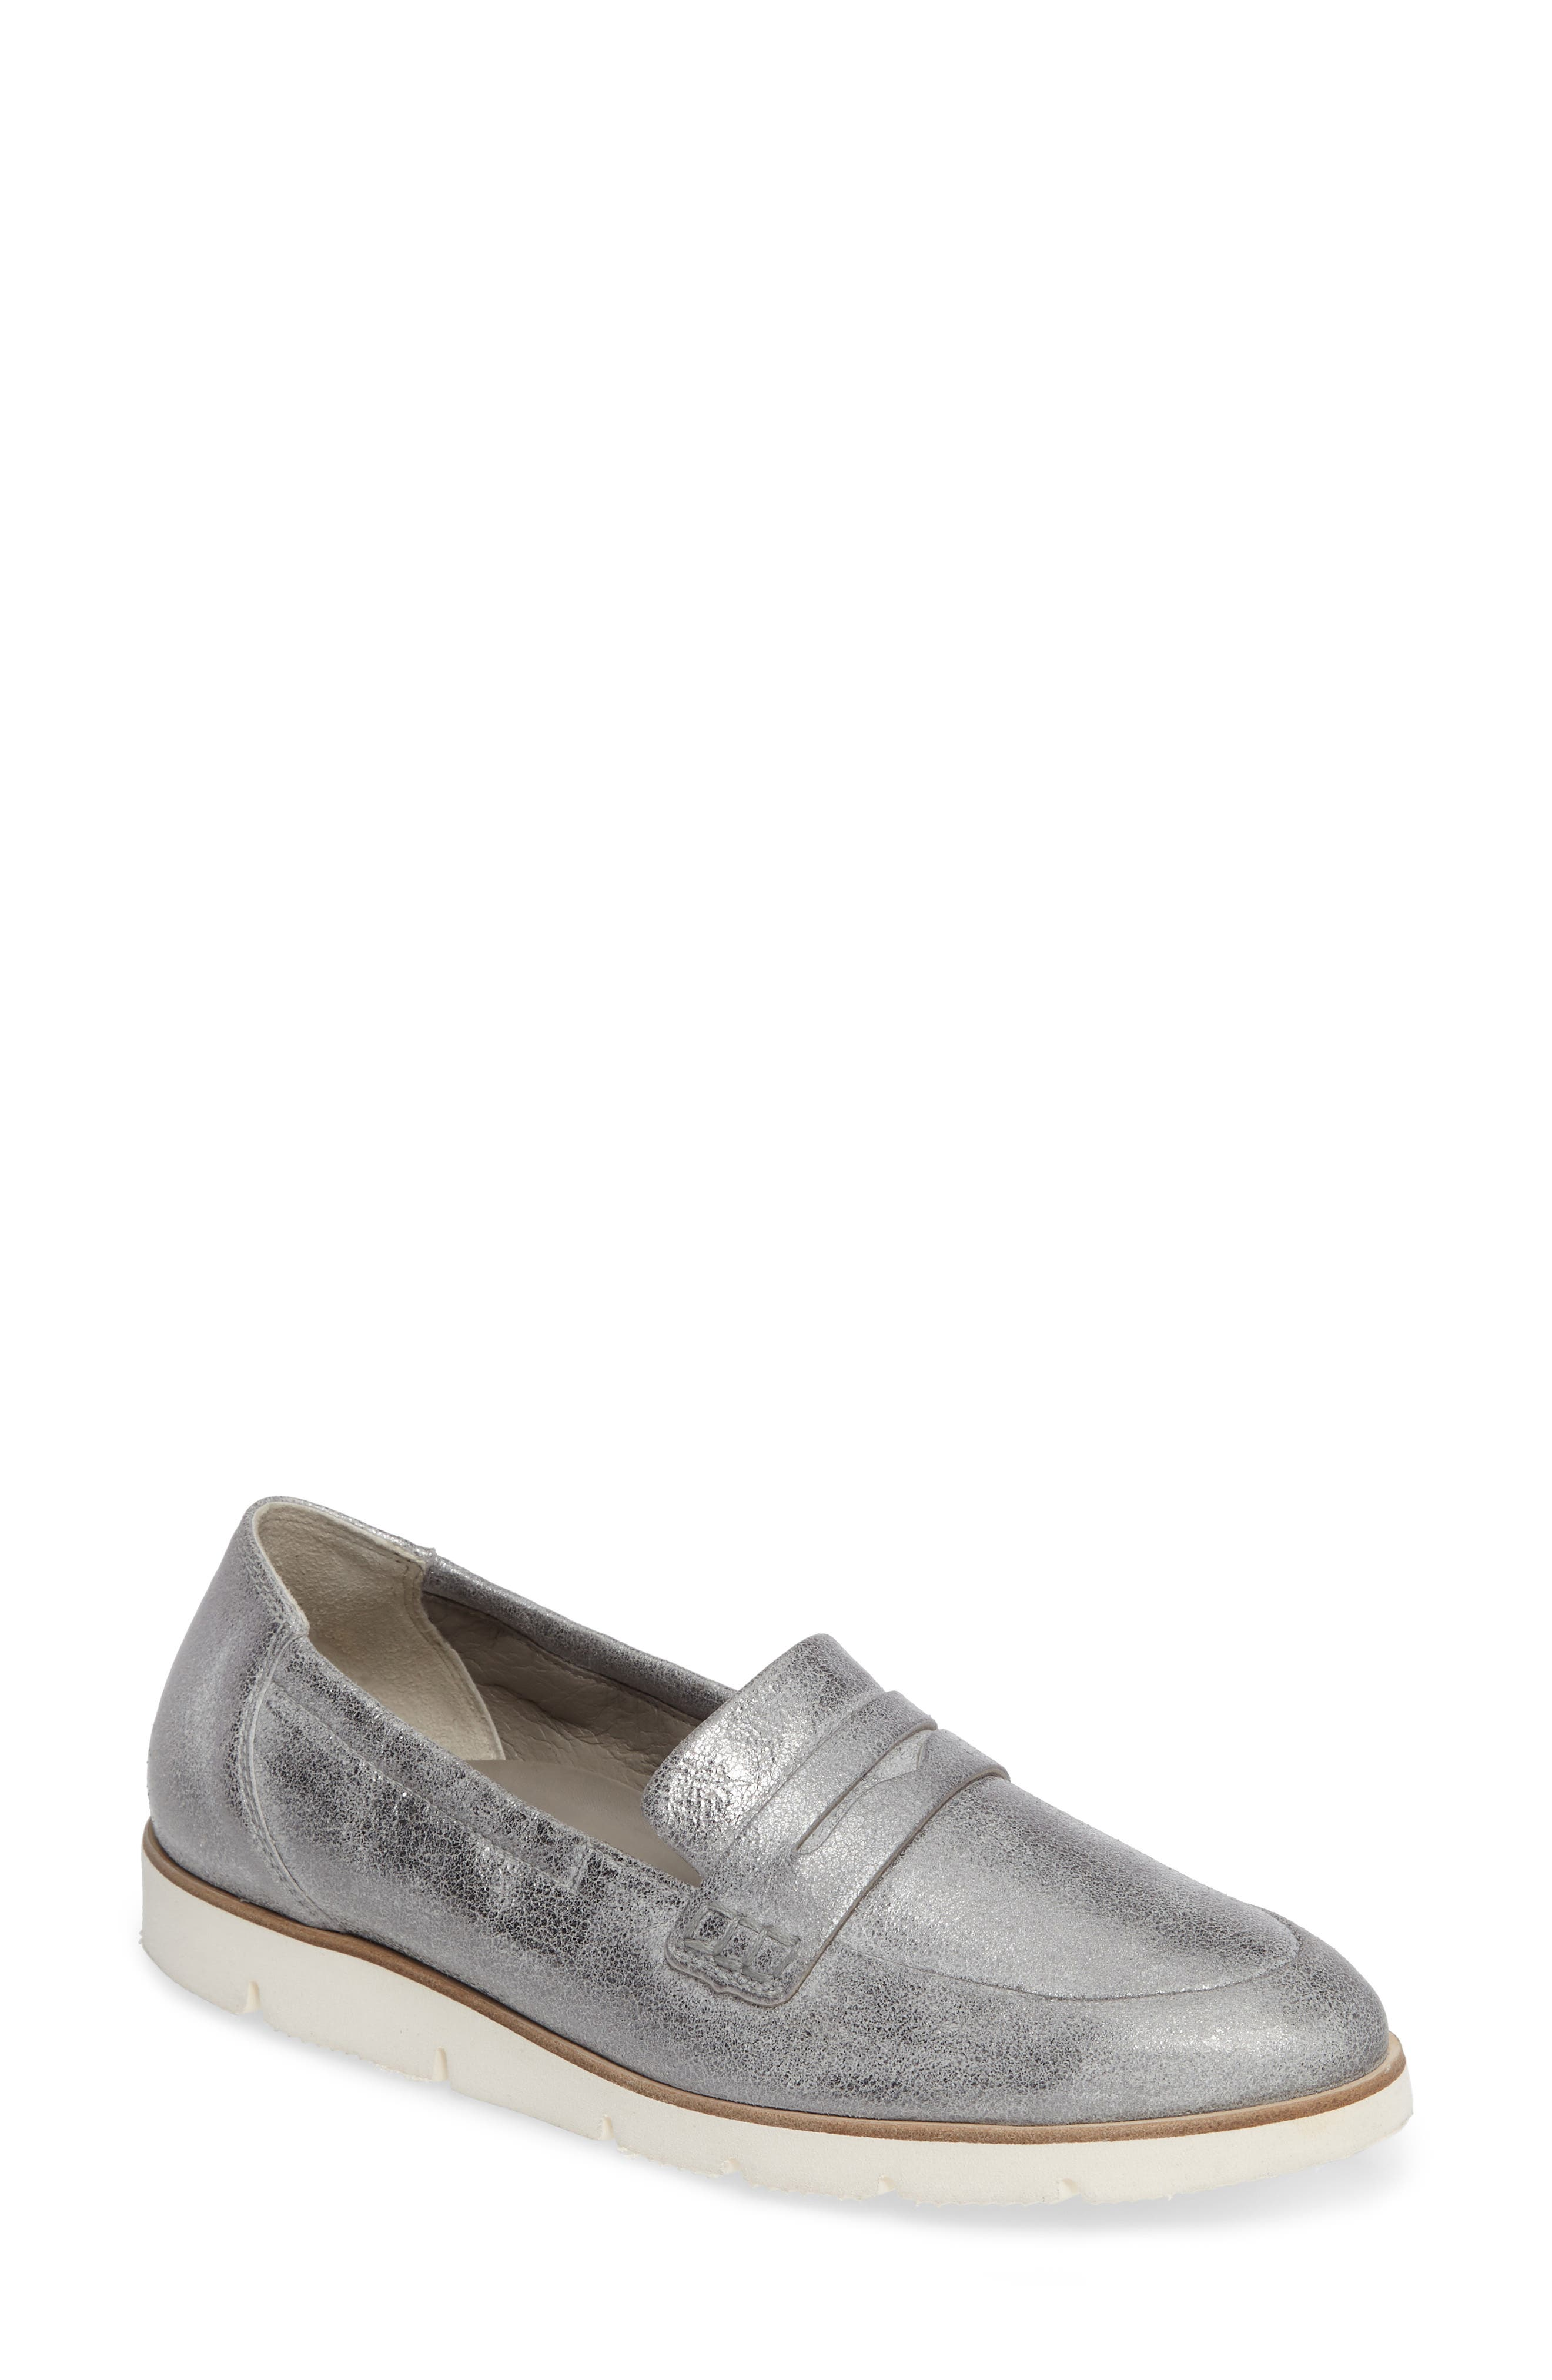 Alternate Image 1 Selected - Paul Green Nico Penny Loafer (Women)